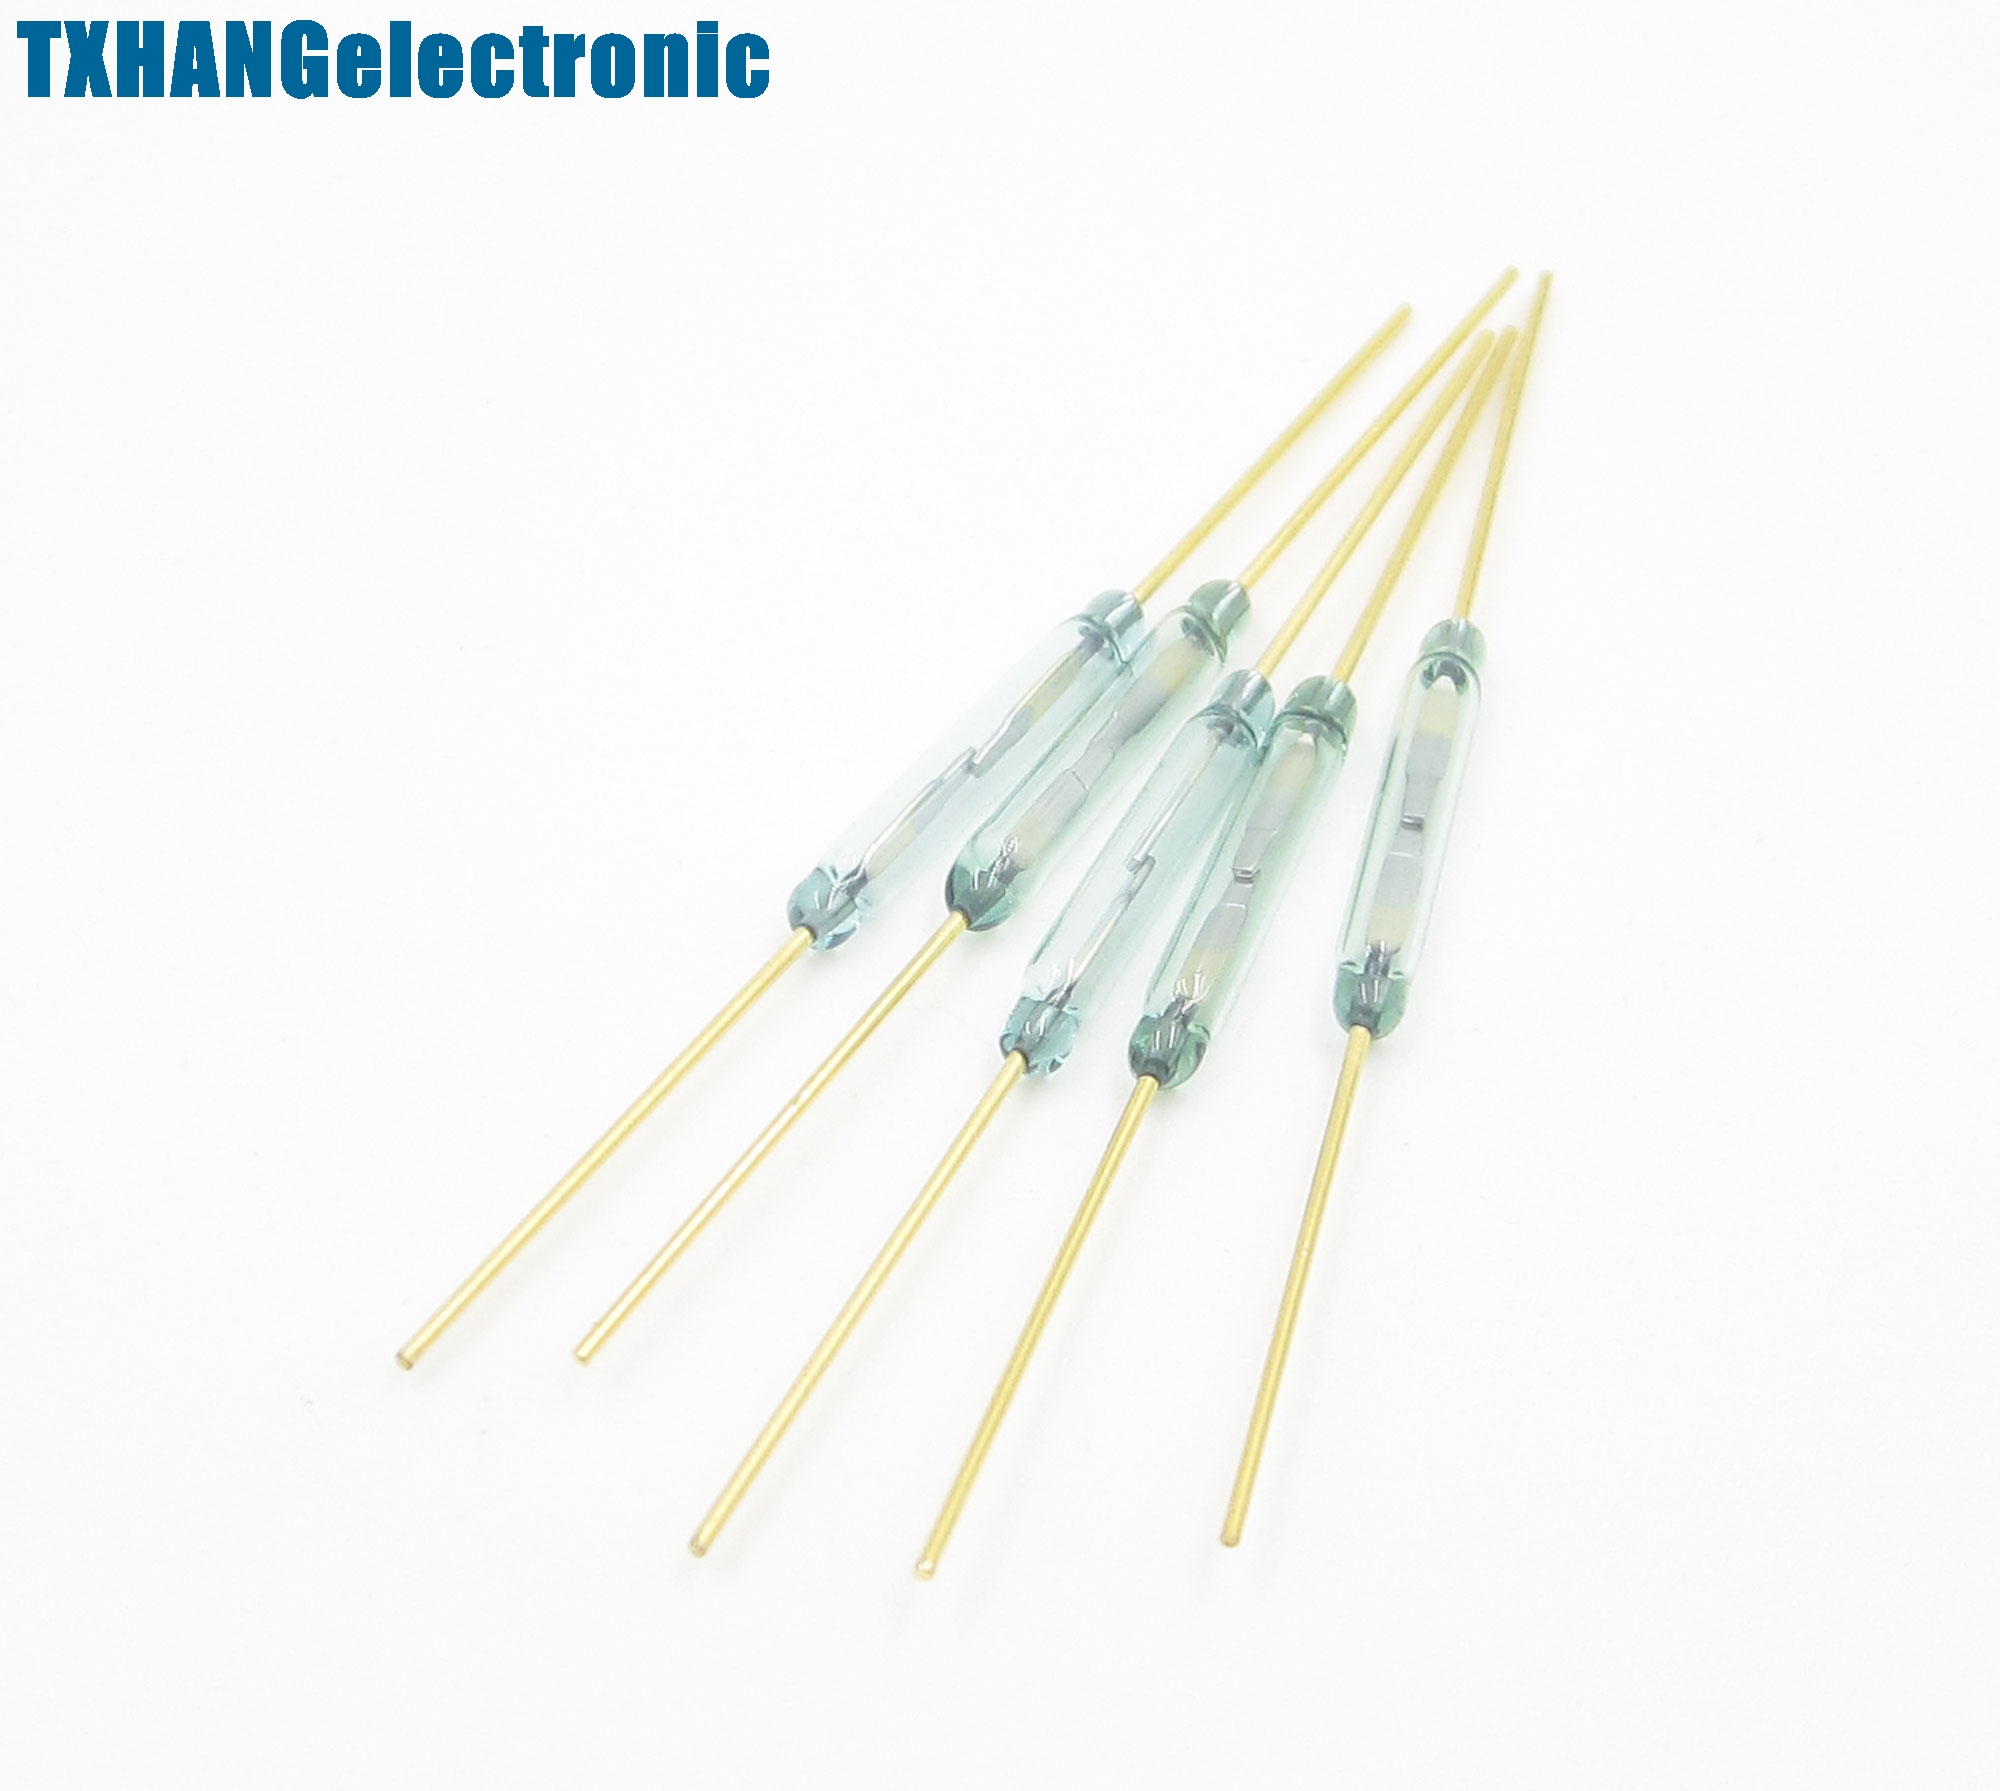 5Pcs 2 x 14mm  MKA-14103 Gold Tone Leads Glass N//O SPST Reed Switches 10-15AT US